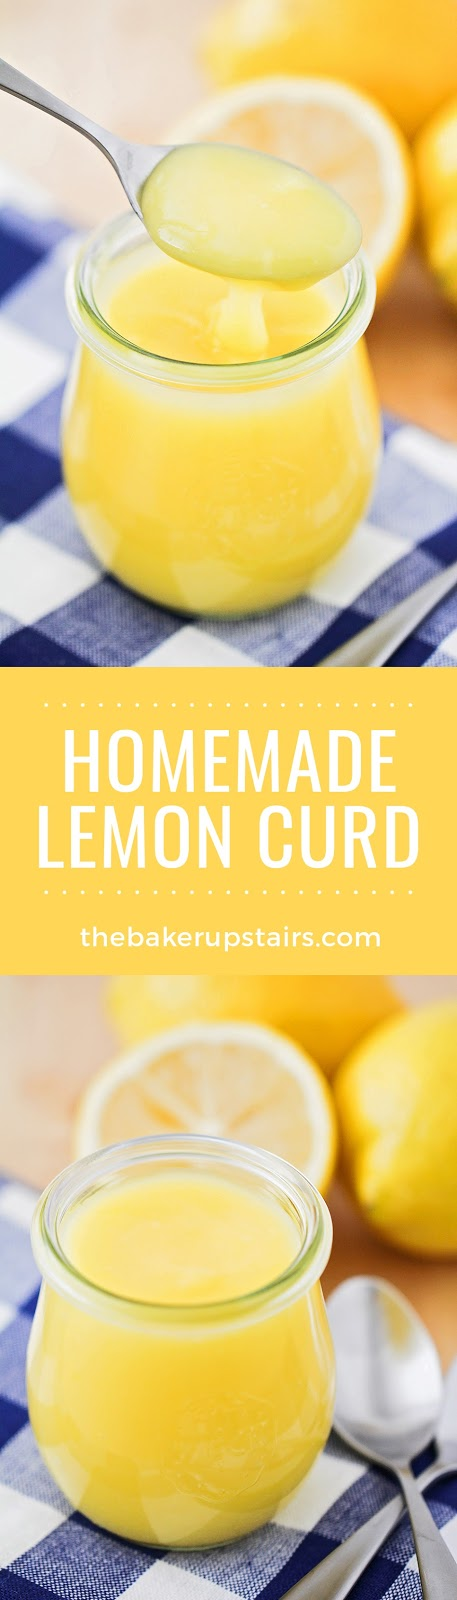 This homemade lemon curd has a bright, sunny flavor, and is the perfect balance of sweet and tart!